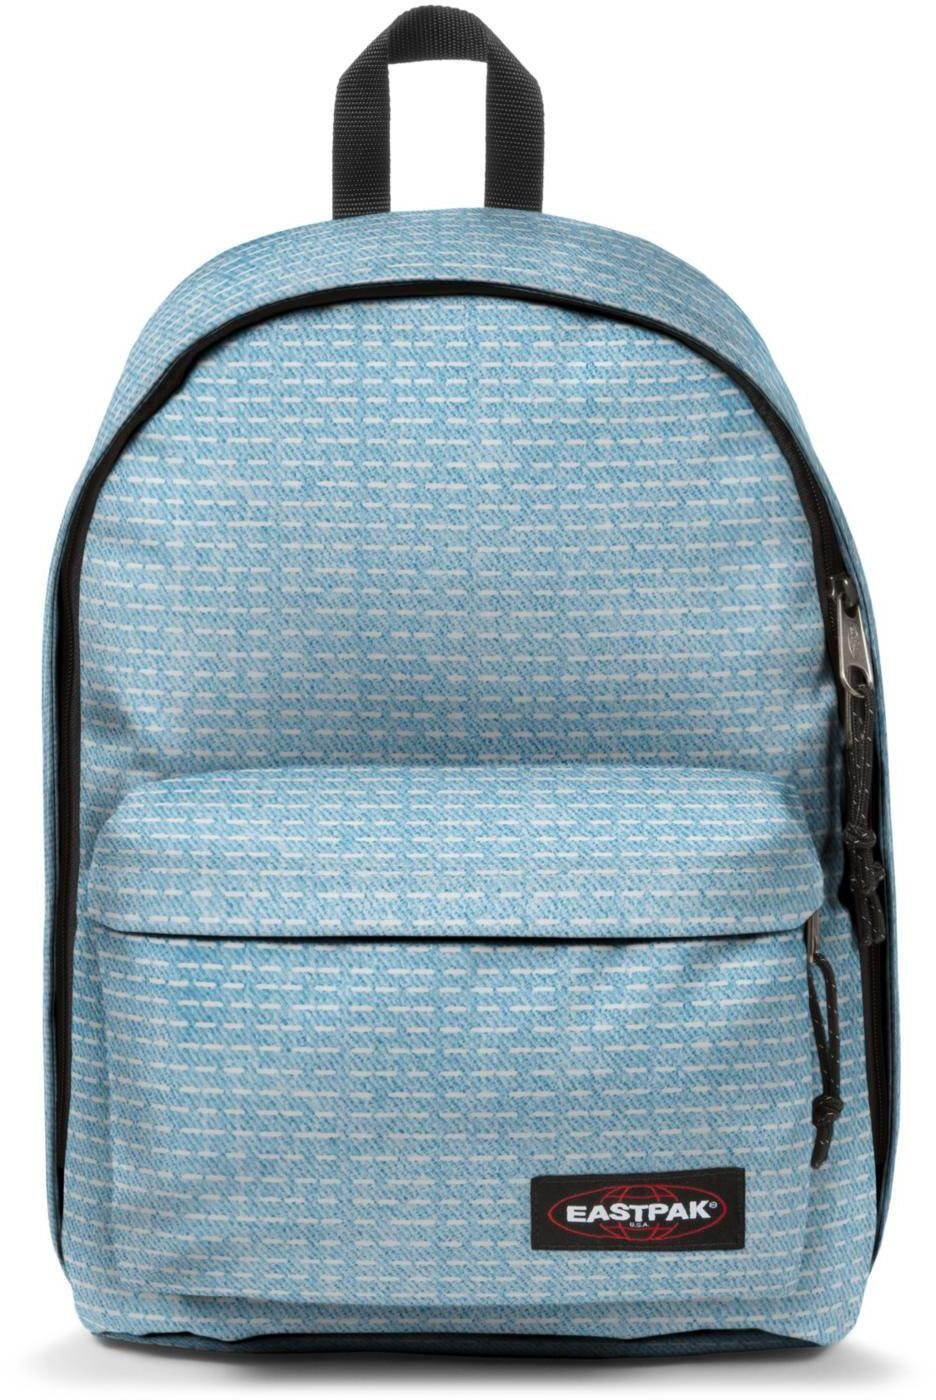 Eastpak Rucksack mit Laptopfach, »OUT OF OFFICE stitch line«